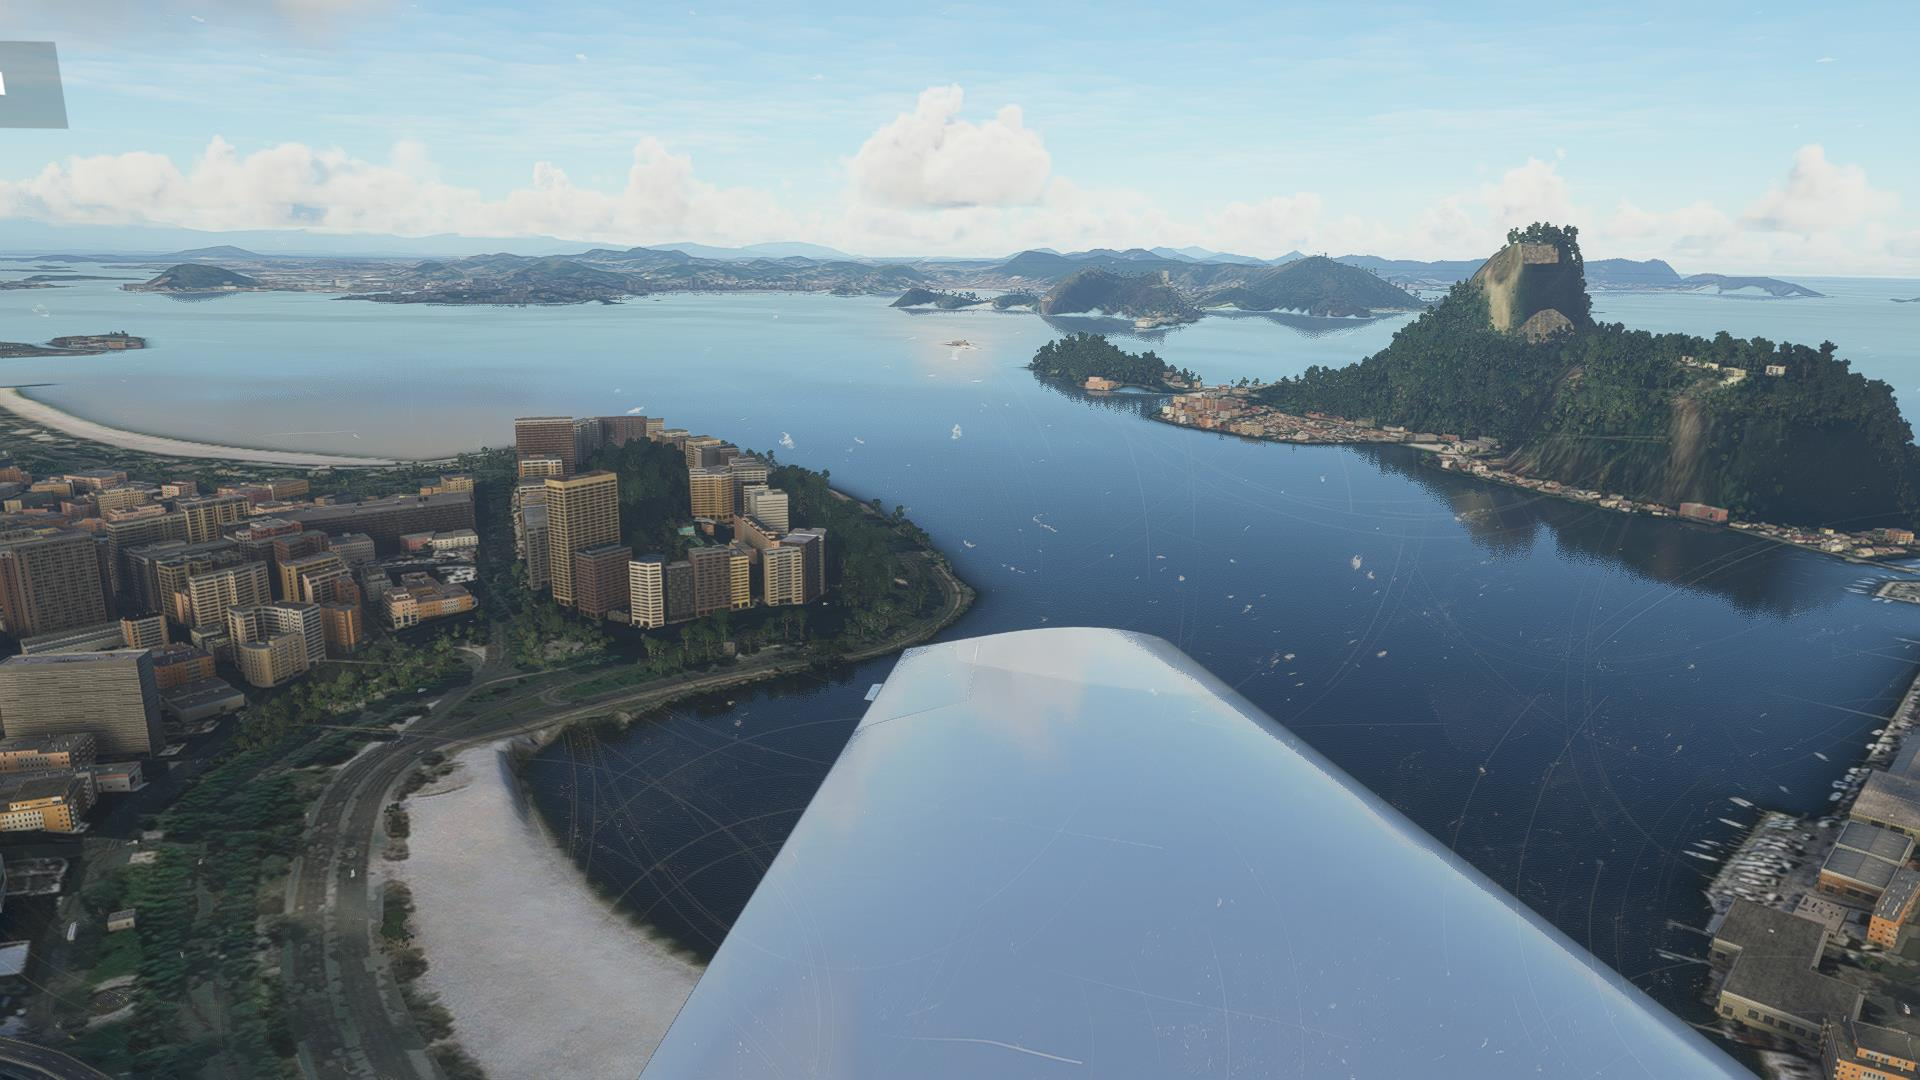 https://vivendobyte.blob.core.windows.net/57793/Microsoft Flight Simulator 13_01_2021 20_01_28.jpg